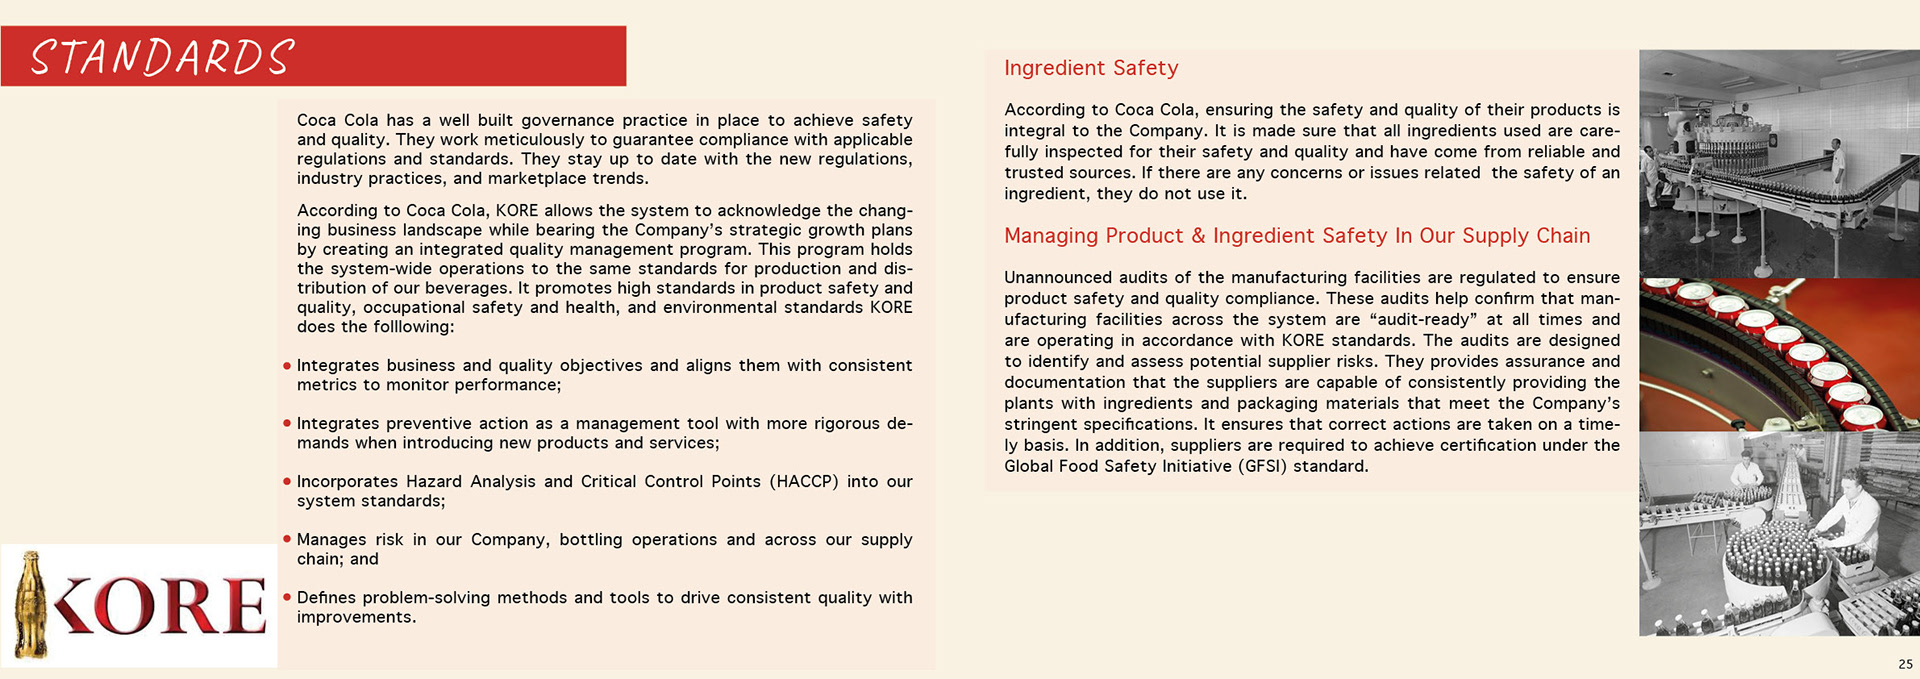 Strategic Management Plan Of Coca Cola